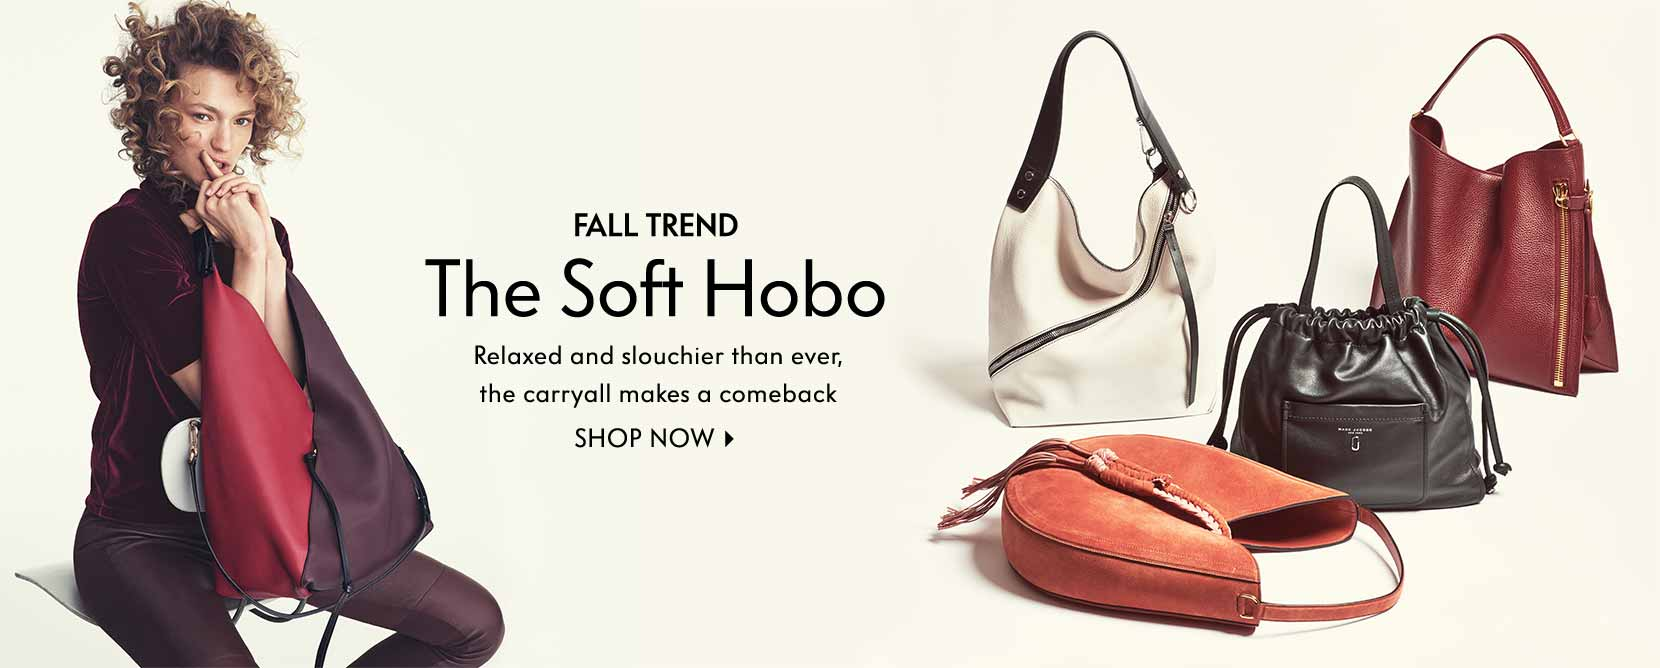 Fall Trend The Soft Hobo Relaxed and slouchier than ever, the carryall makes a comeback Shop now